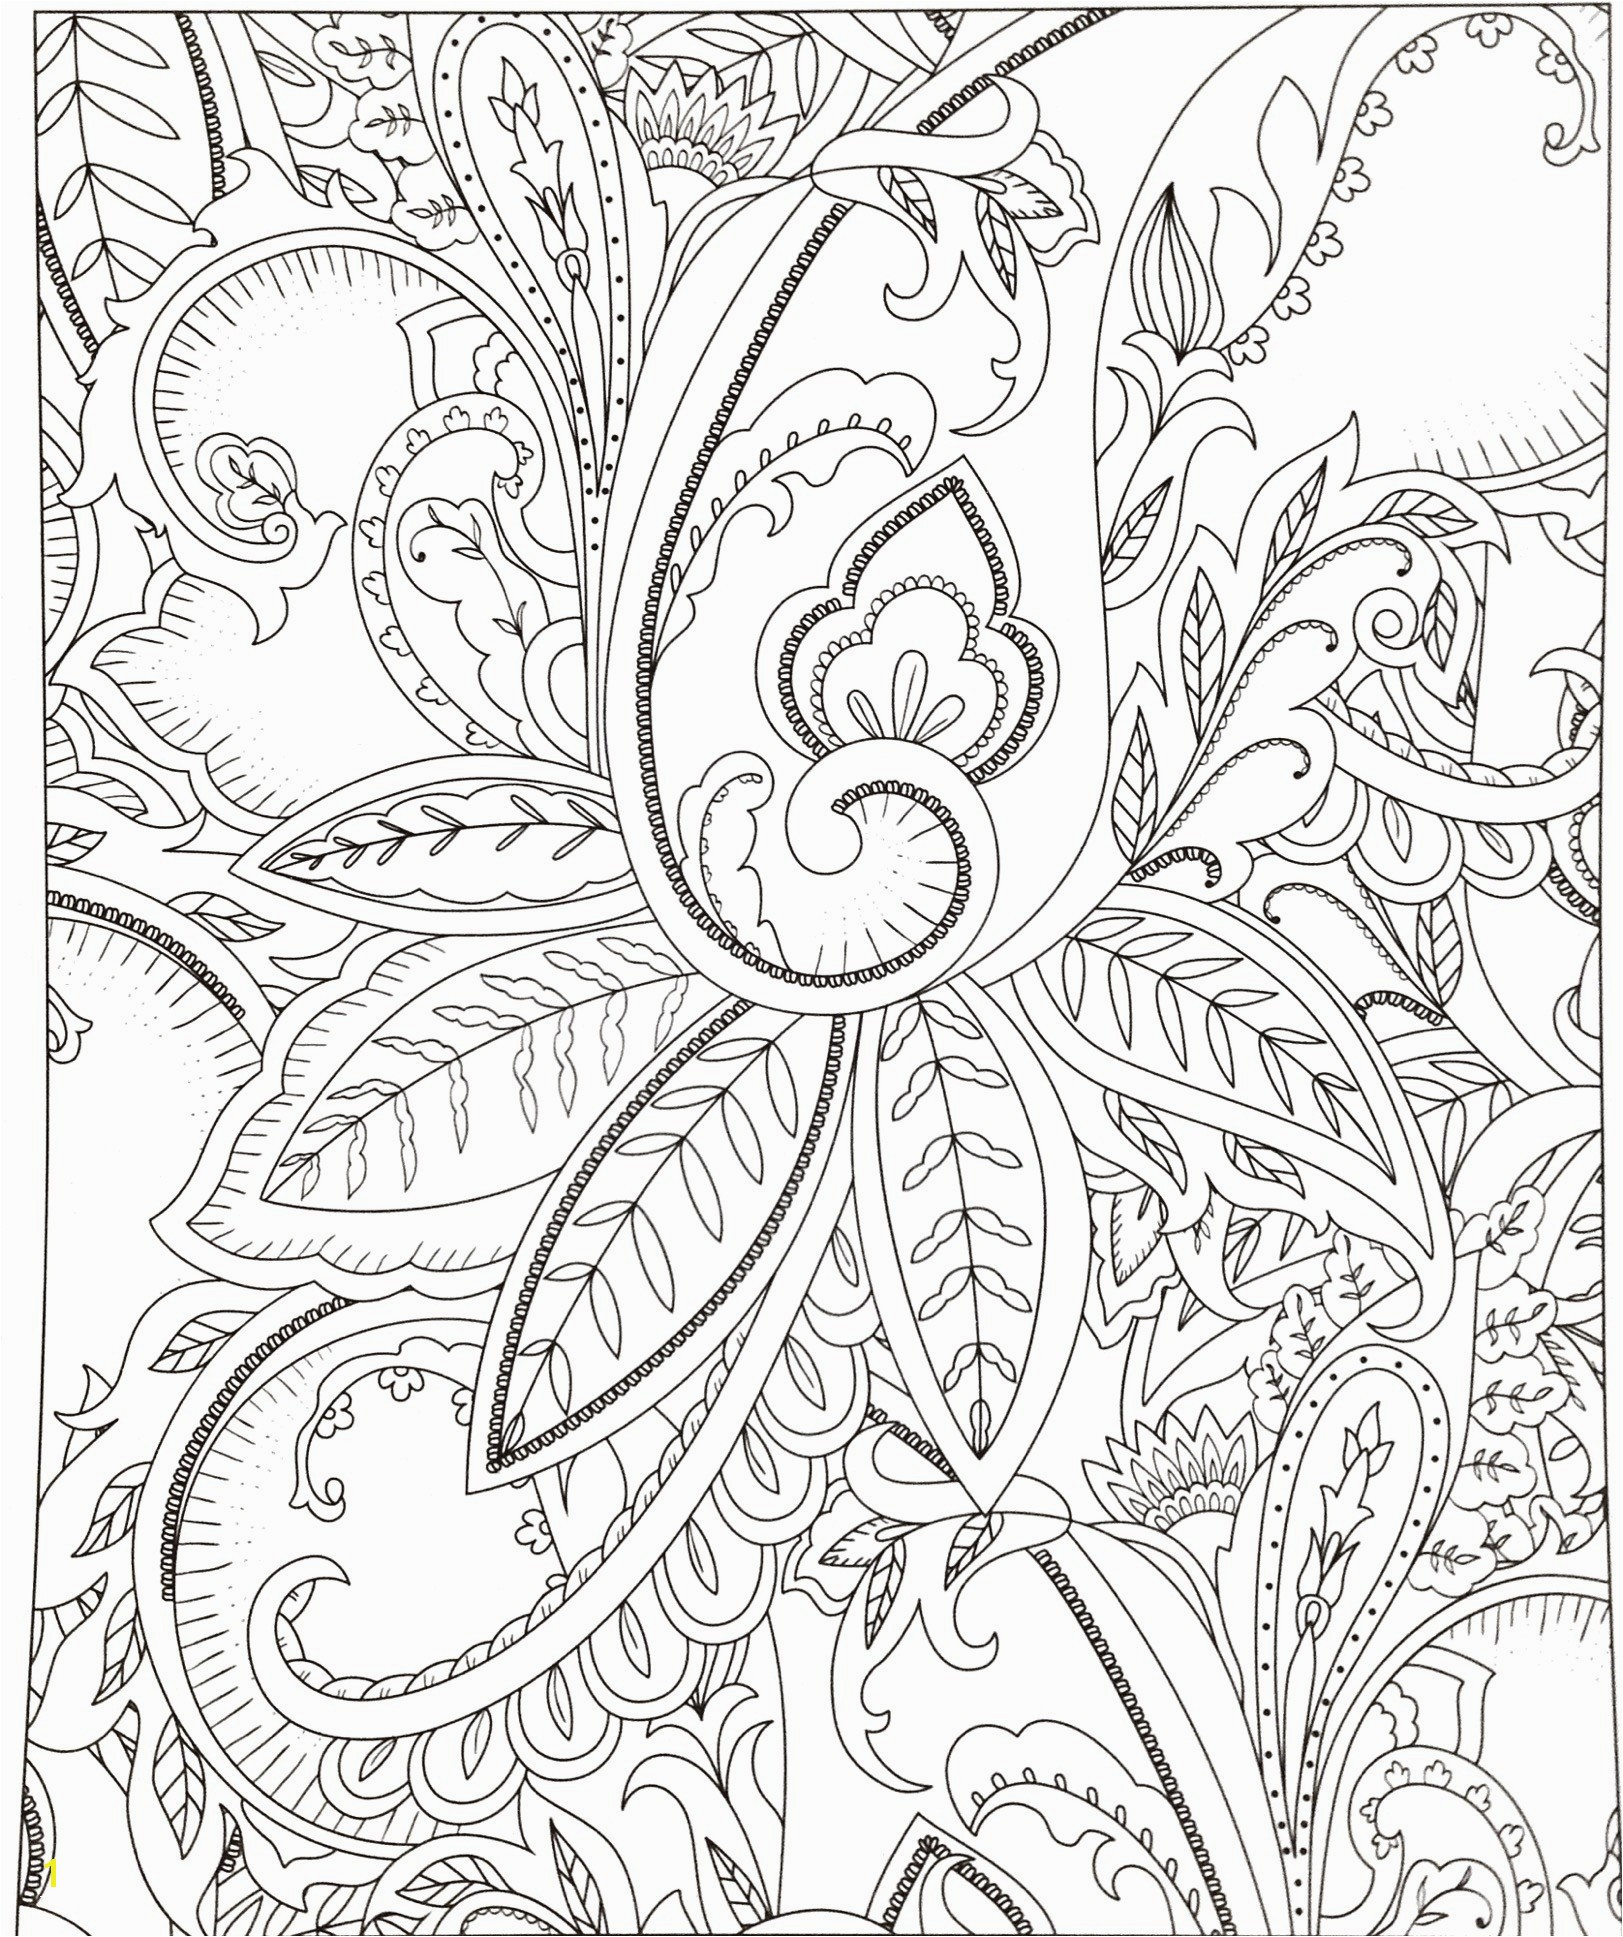 Free Coloring Pages Bible Beautiful Free Coloring Fresh Book Page Image Beautiful Page Coloring 0d Free